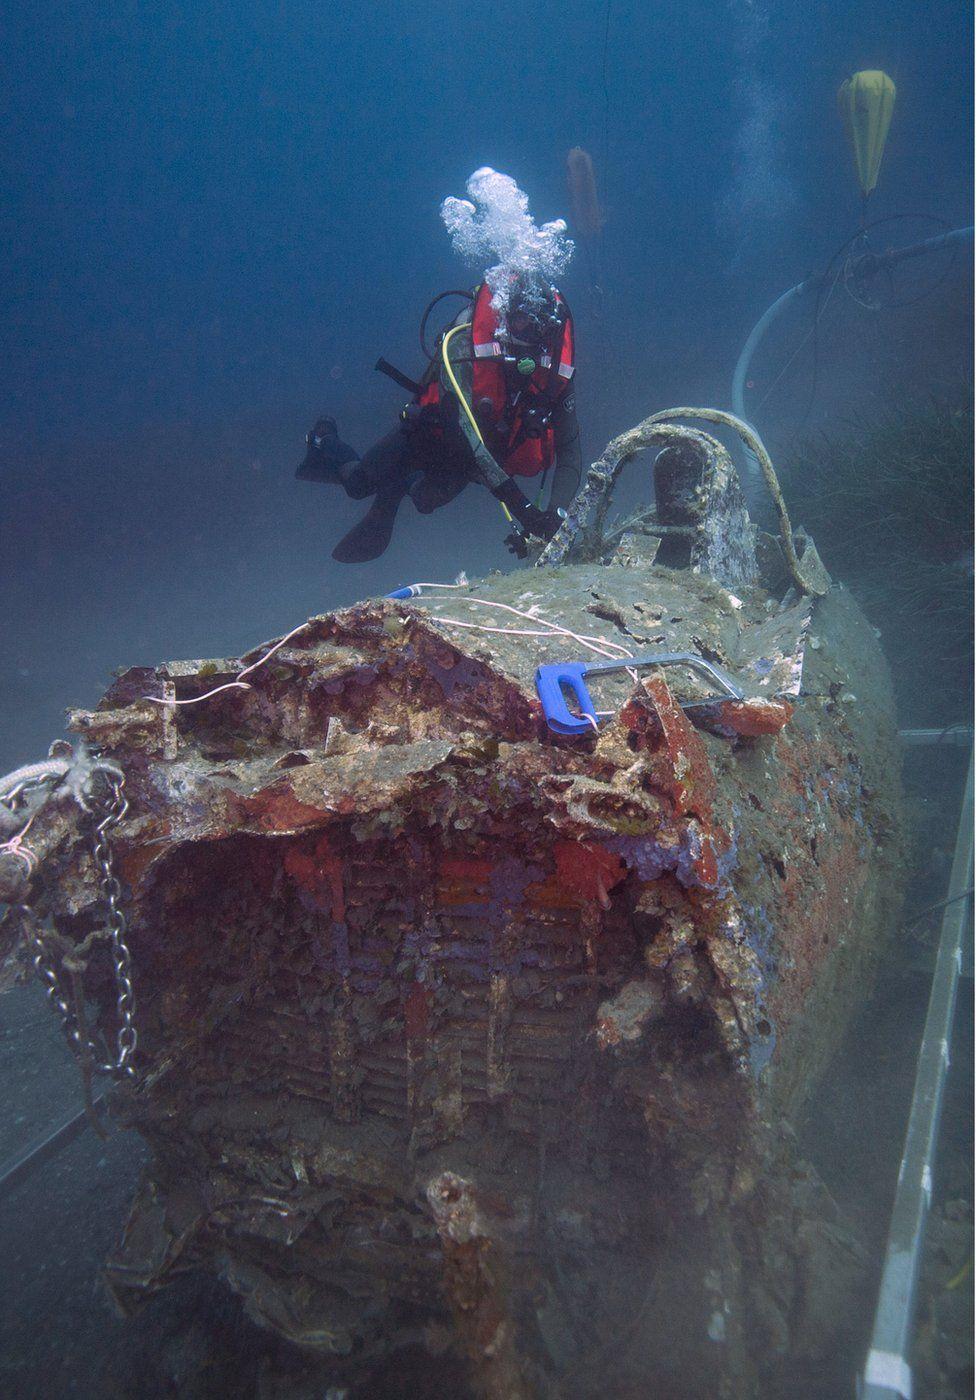 A French military diver member of the FS Pluton M622 navy de-mining ship, swims on July 2, 2018, above the wreck of an USAAF P-47 Thunderbolt (Warthog) US fighter plane